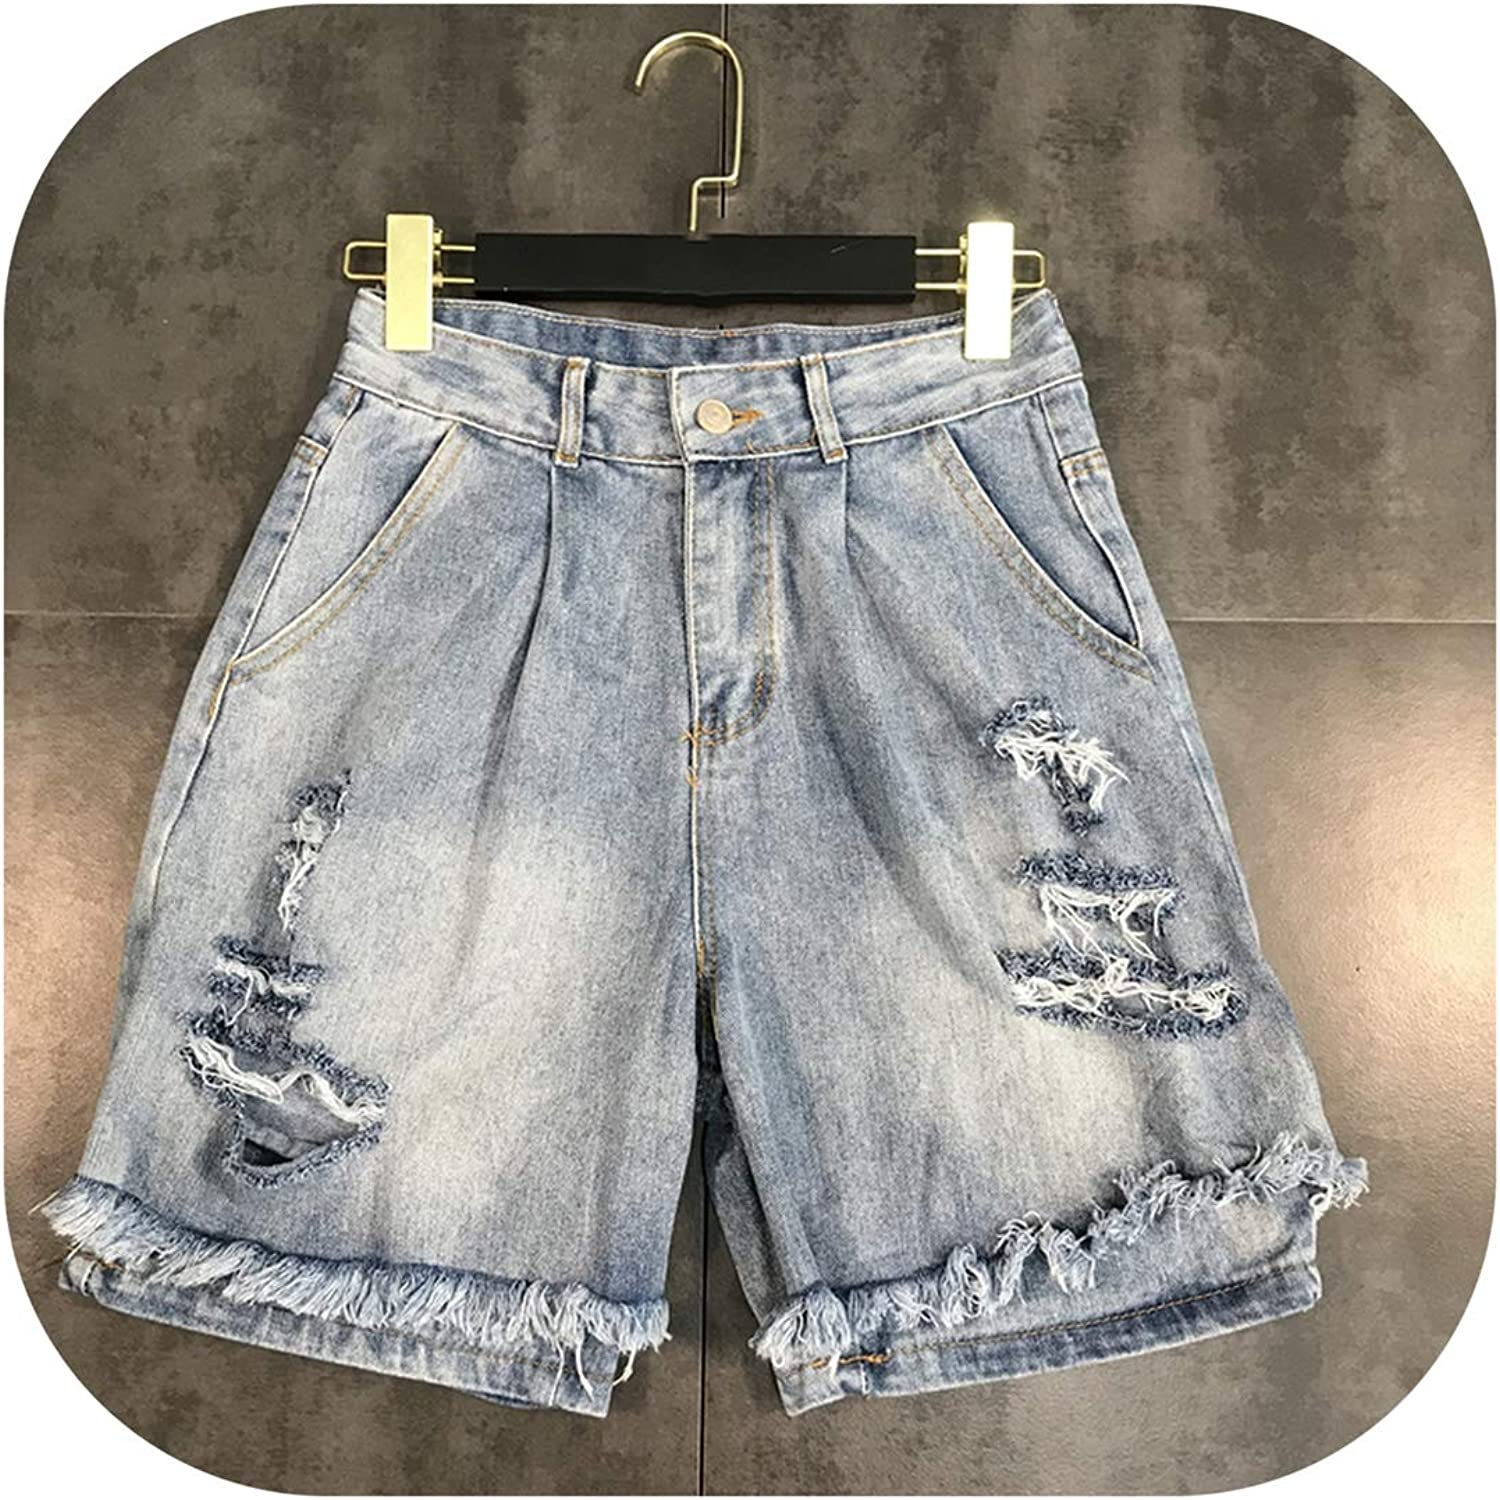 Fake Two Piece Women Distressed Denim Shorts High Waist Hole Light bluee Fashion,